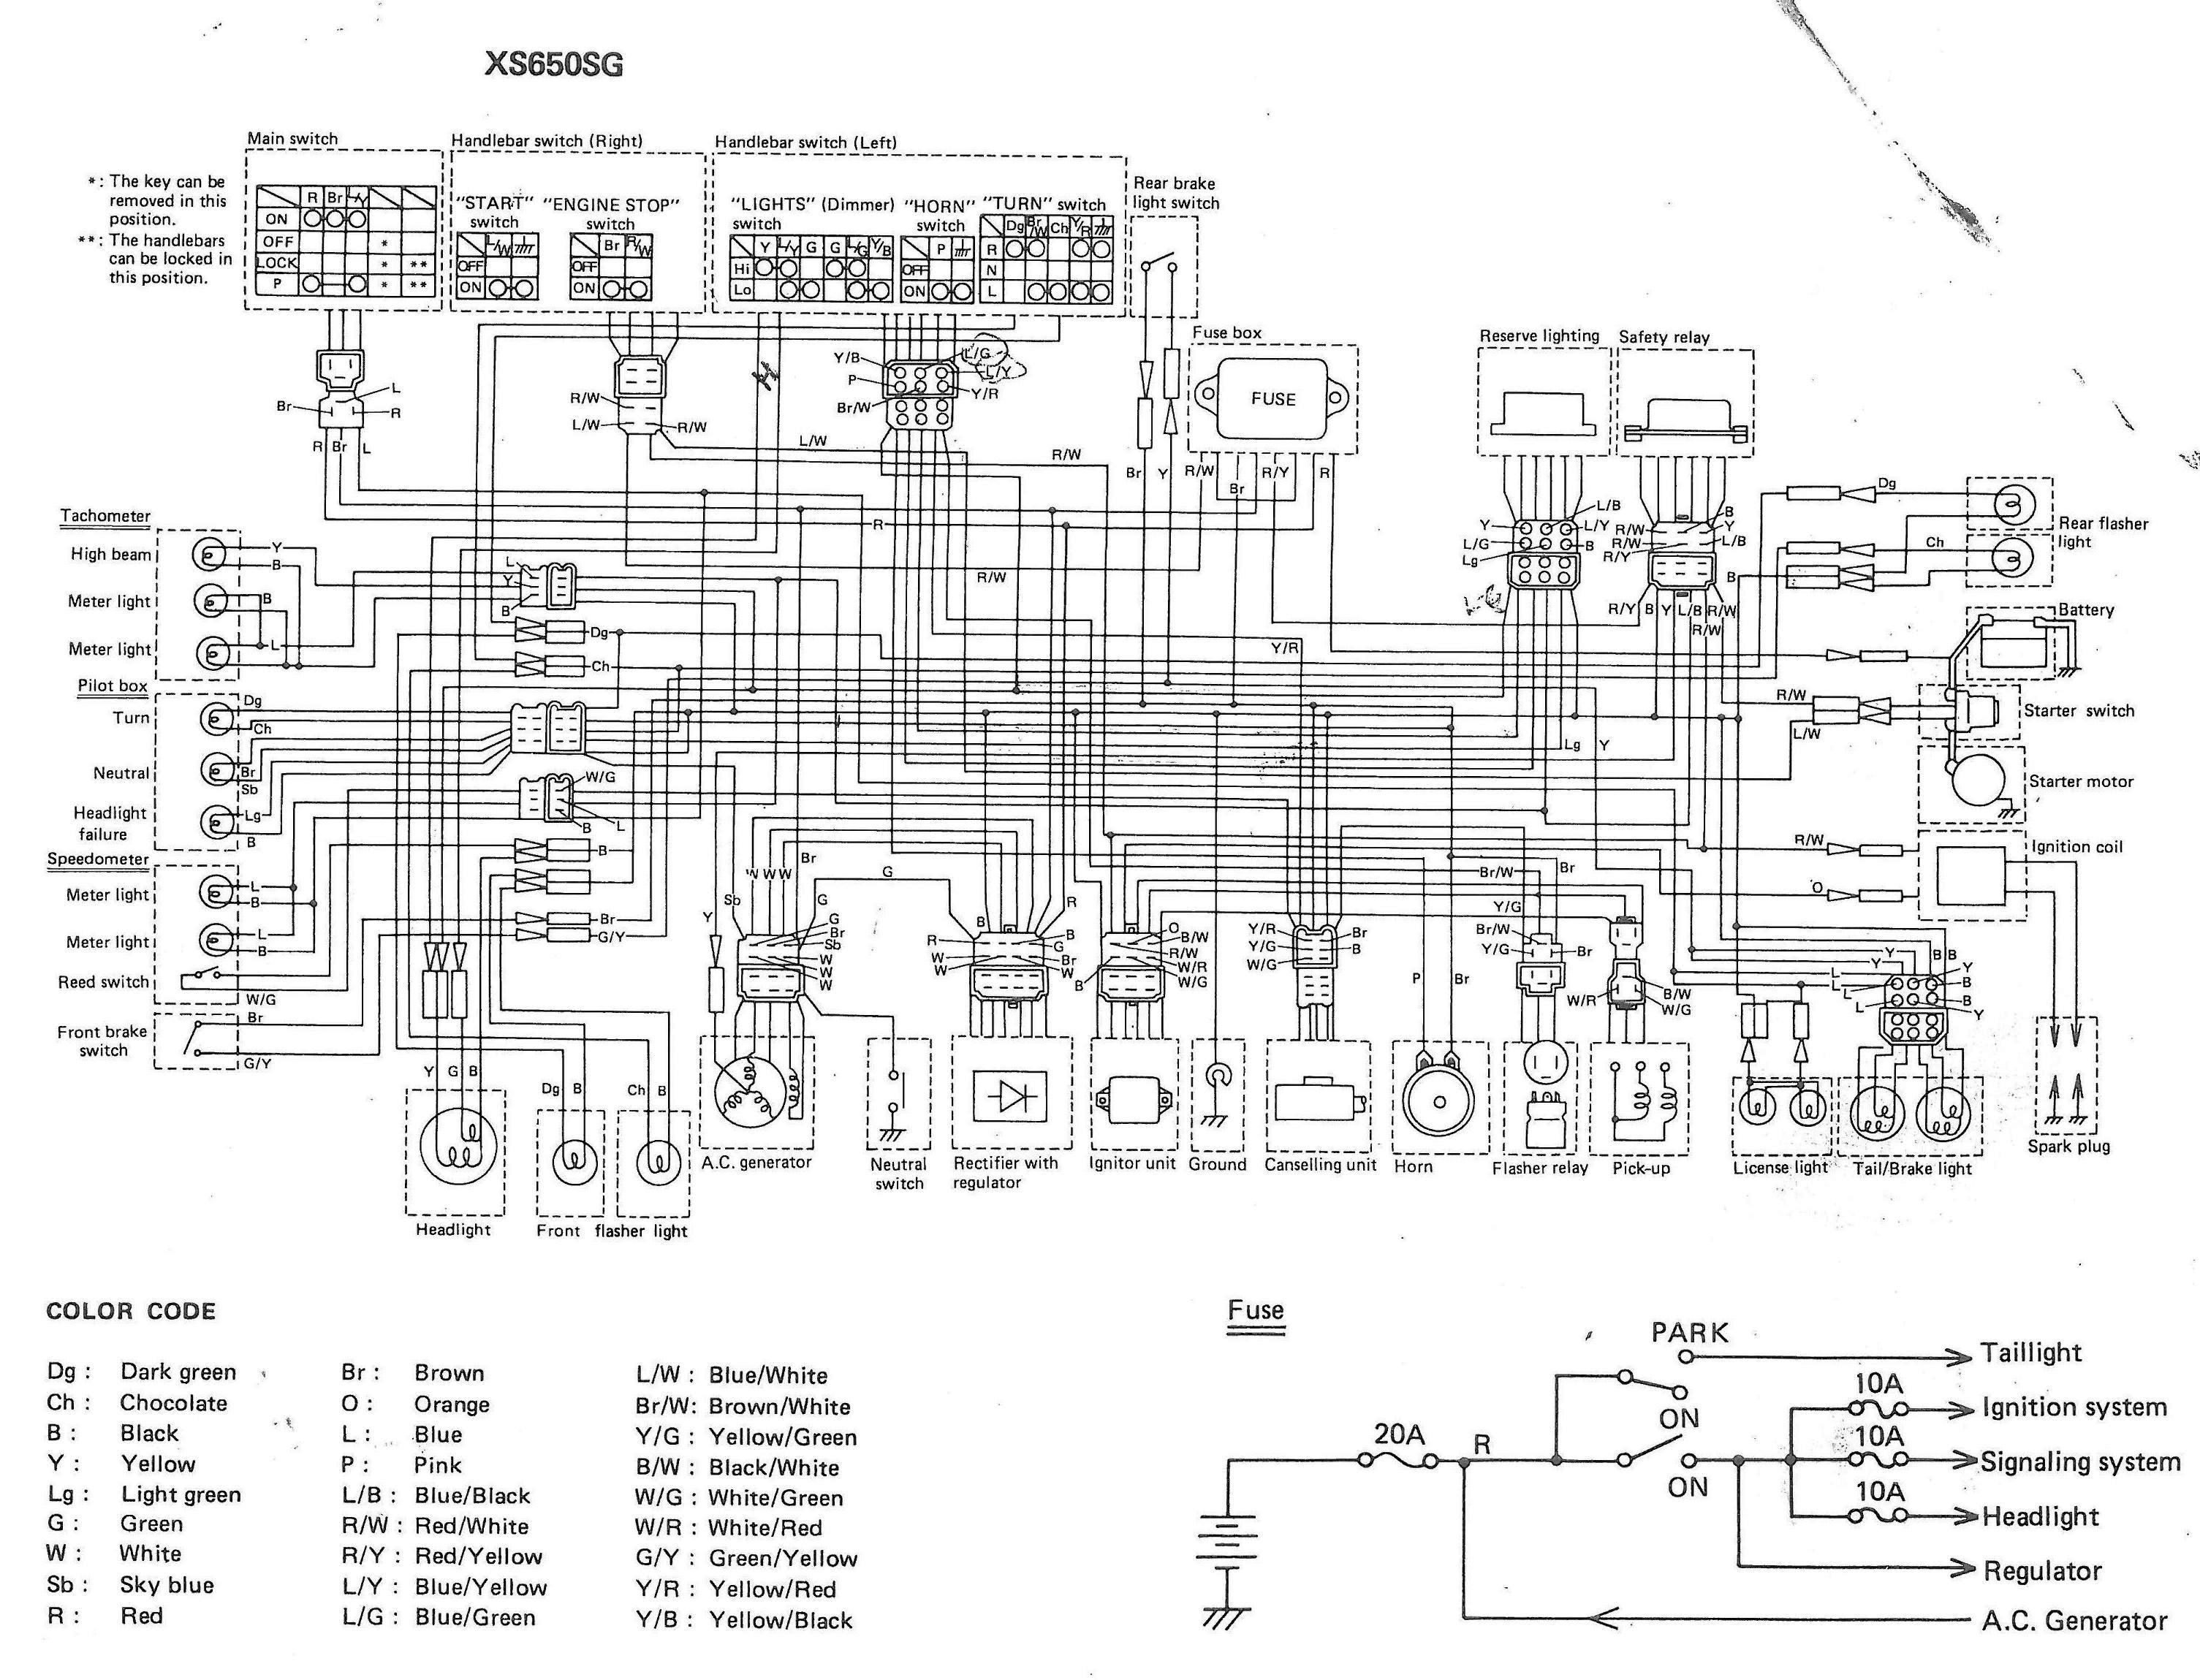 80 xs650sg 1 april 2012 thexscafe 1979 xs650 wiring diagram at crackthecode.co